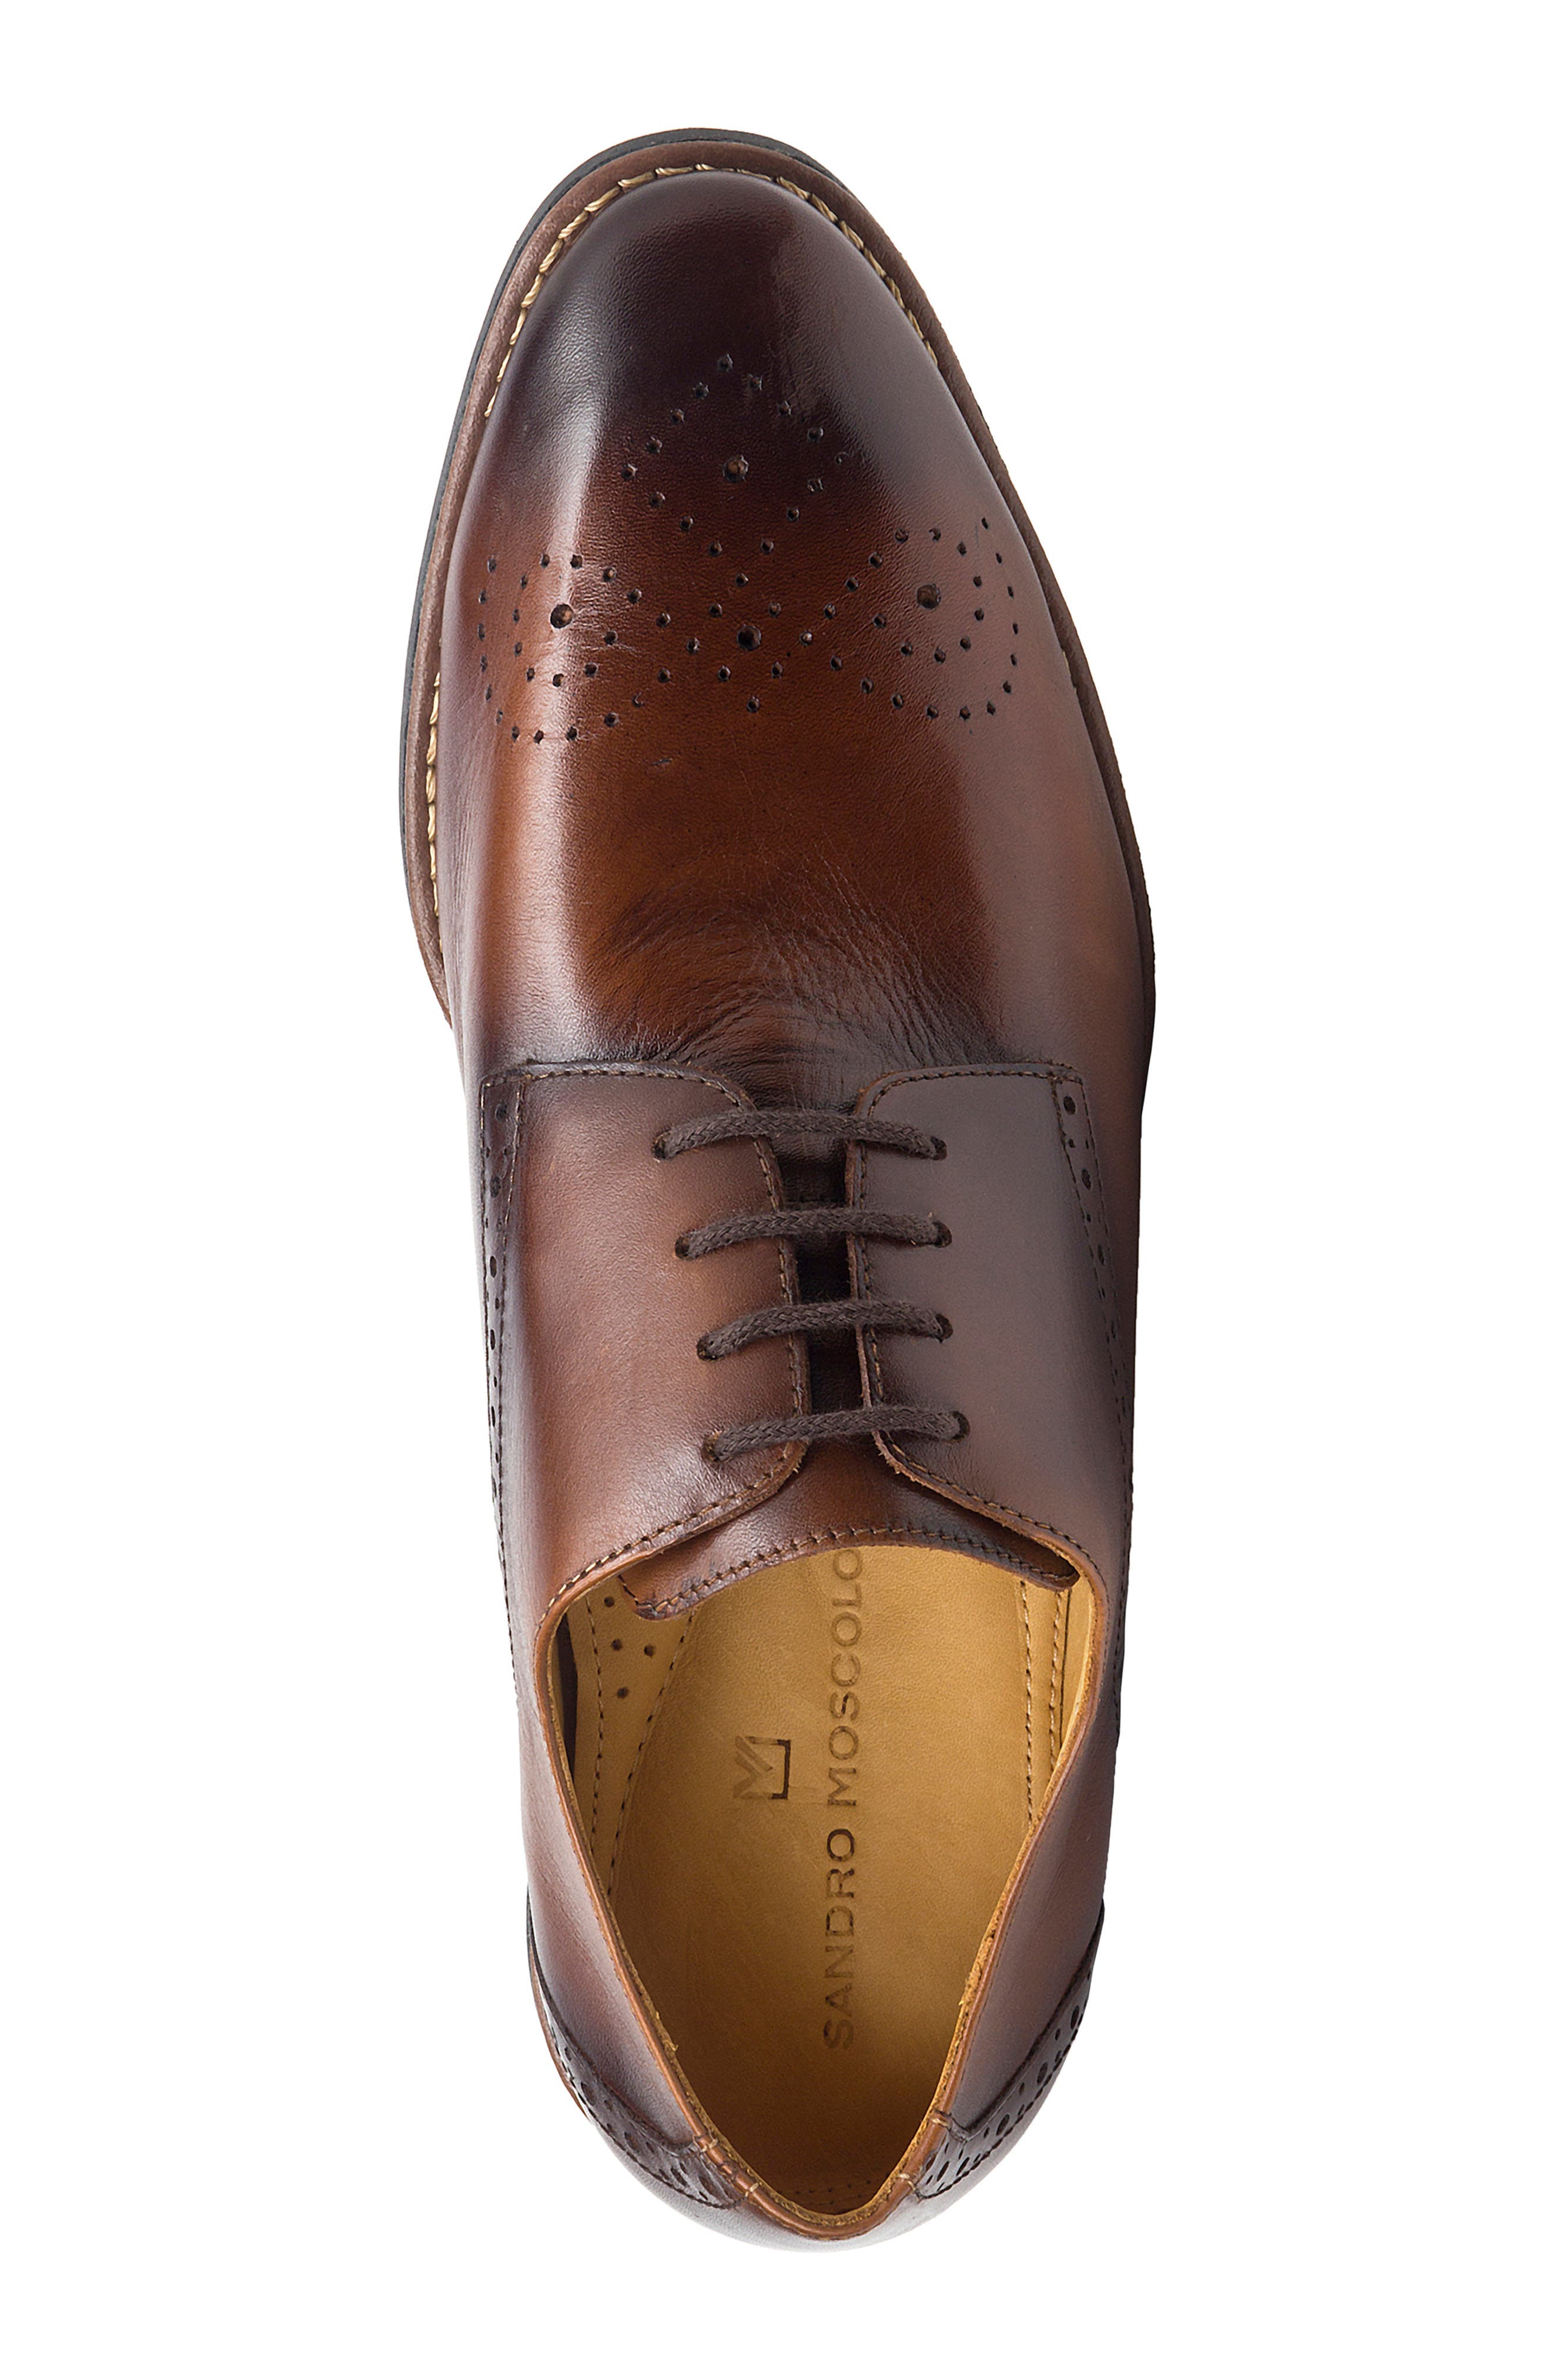 SANDRO MOSCOLONI, Mended Medallion Toe Derby, Alternate thumbnail 5, color, BROWN LEATHER